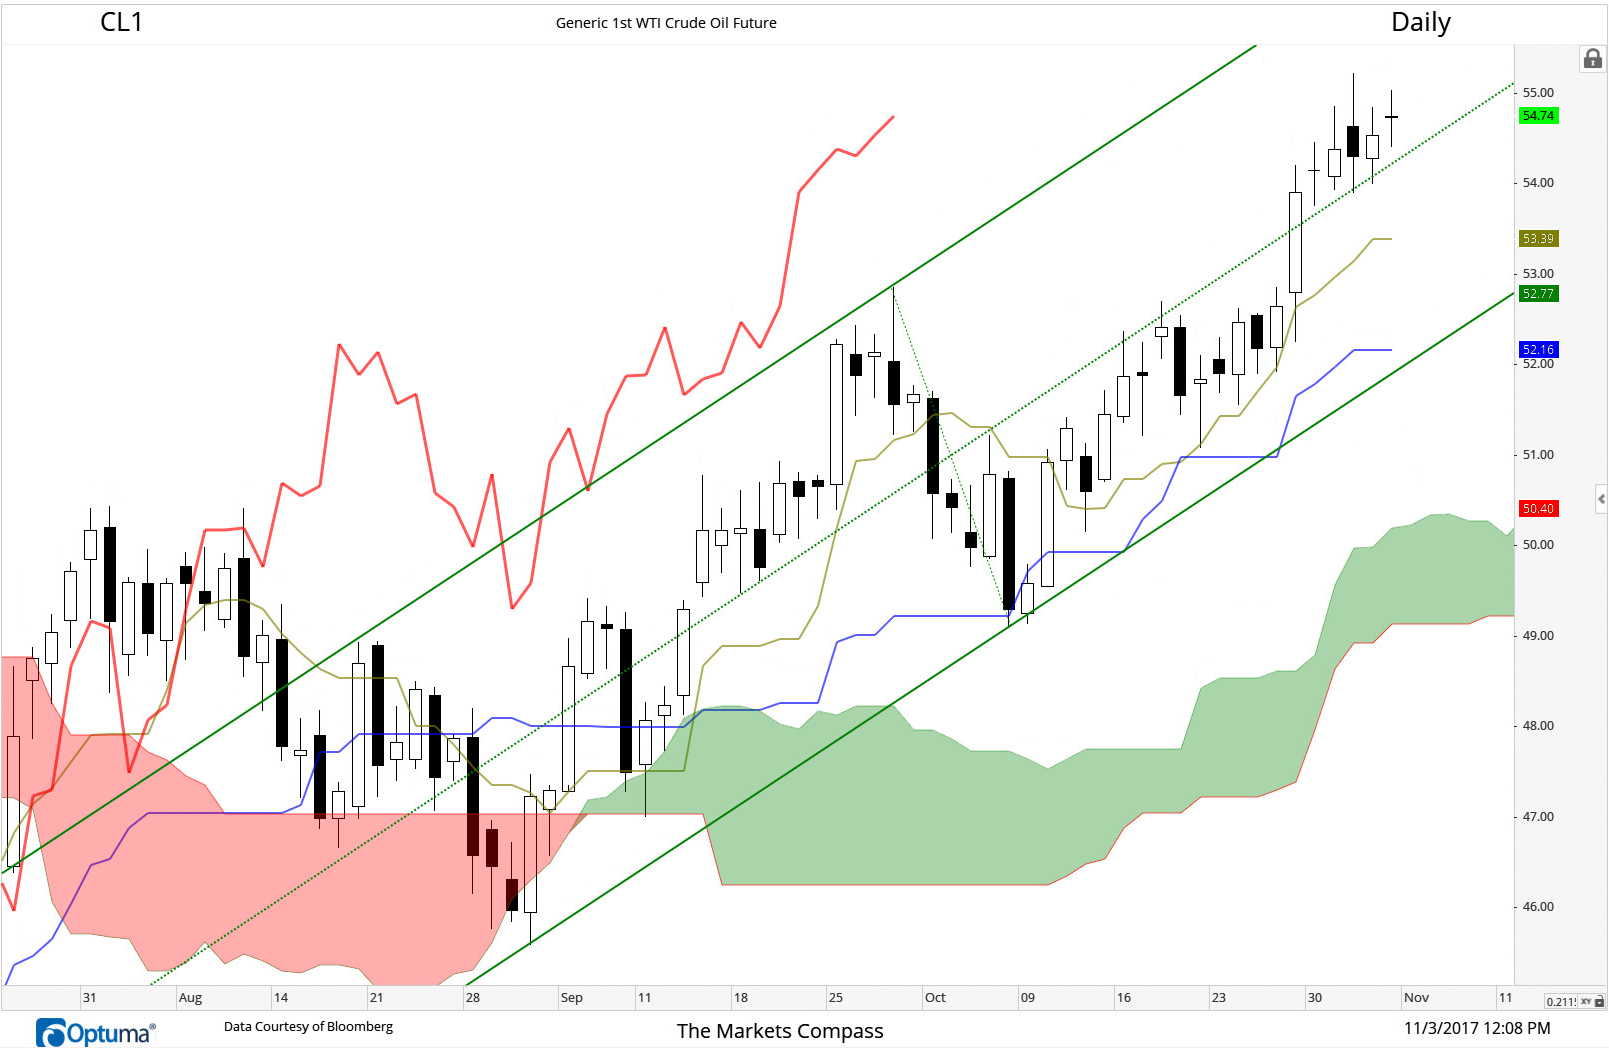 Don't ask me to argue with the trend in WTI Crude. Trades through price and Median Line resistance at $52.50 on Friday of last week. And has consolidated above the Median Line for the past five trading sessions as the Tenkan, Kijun and Chikou Lines all track higher above the Cloud with price.